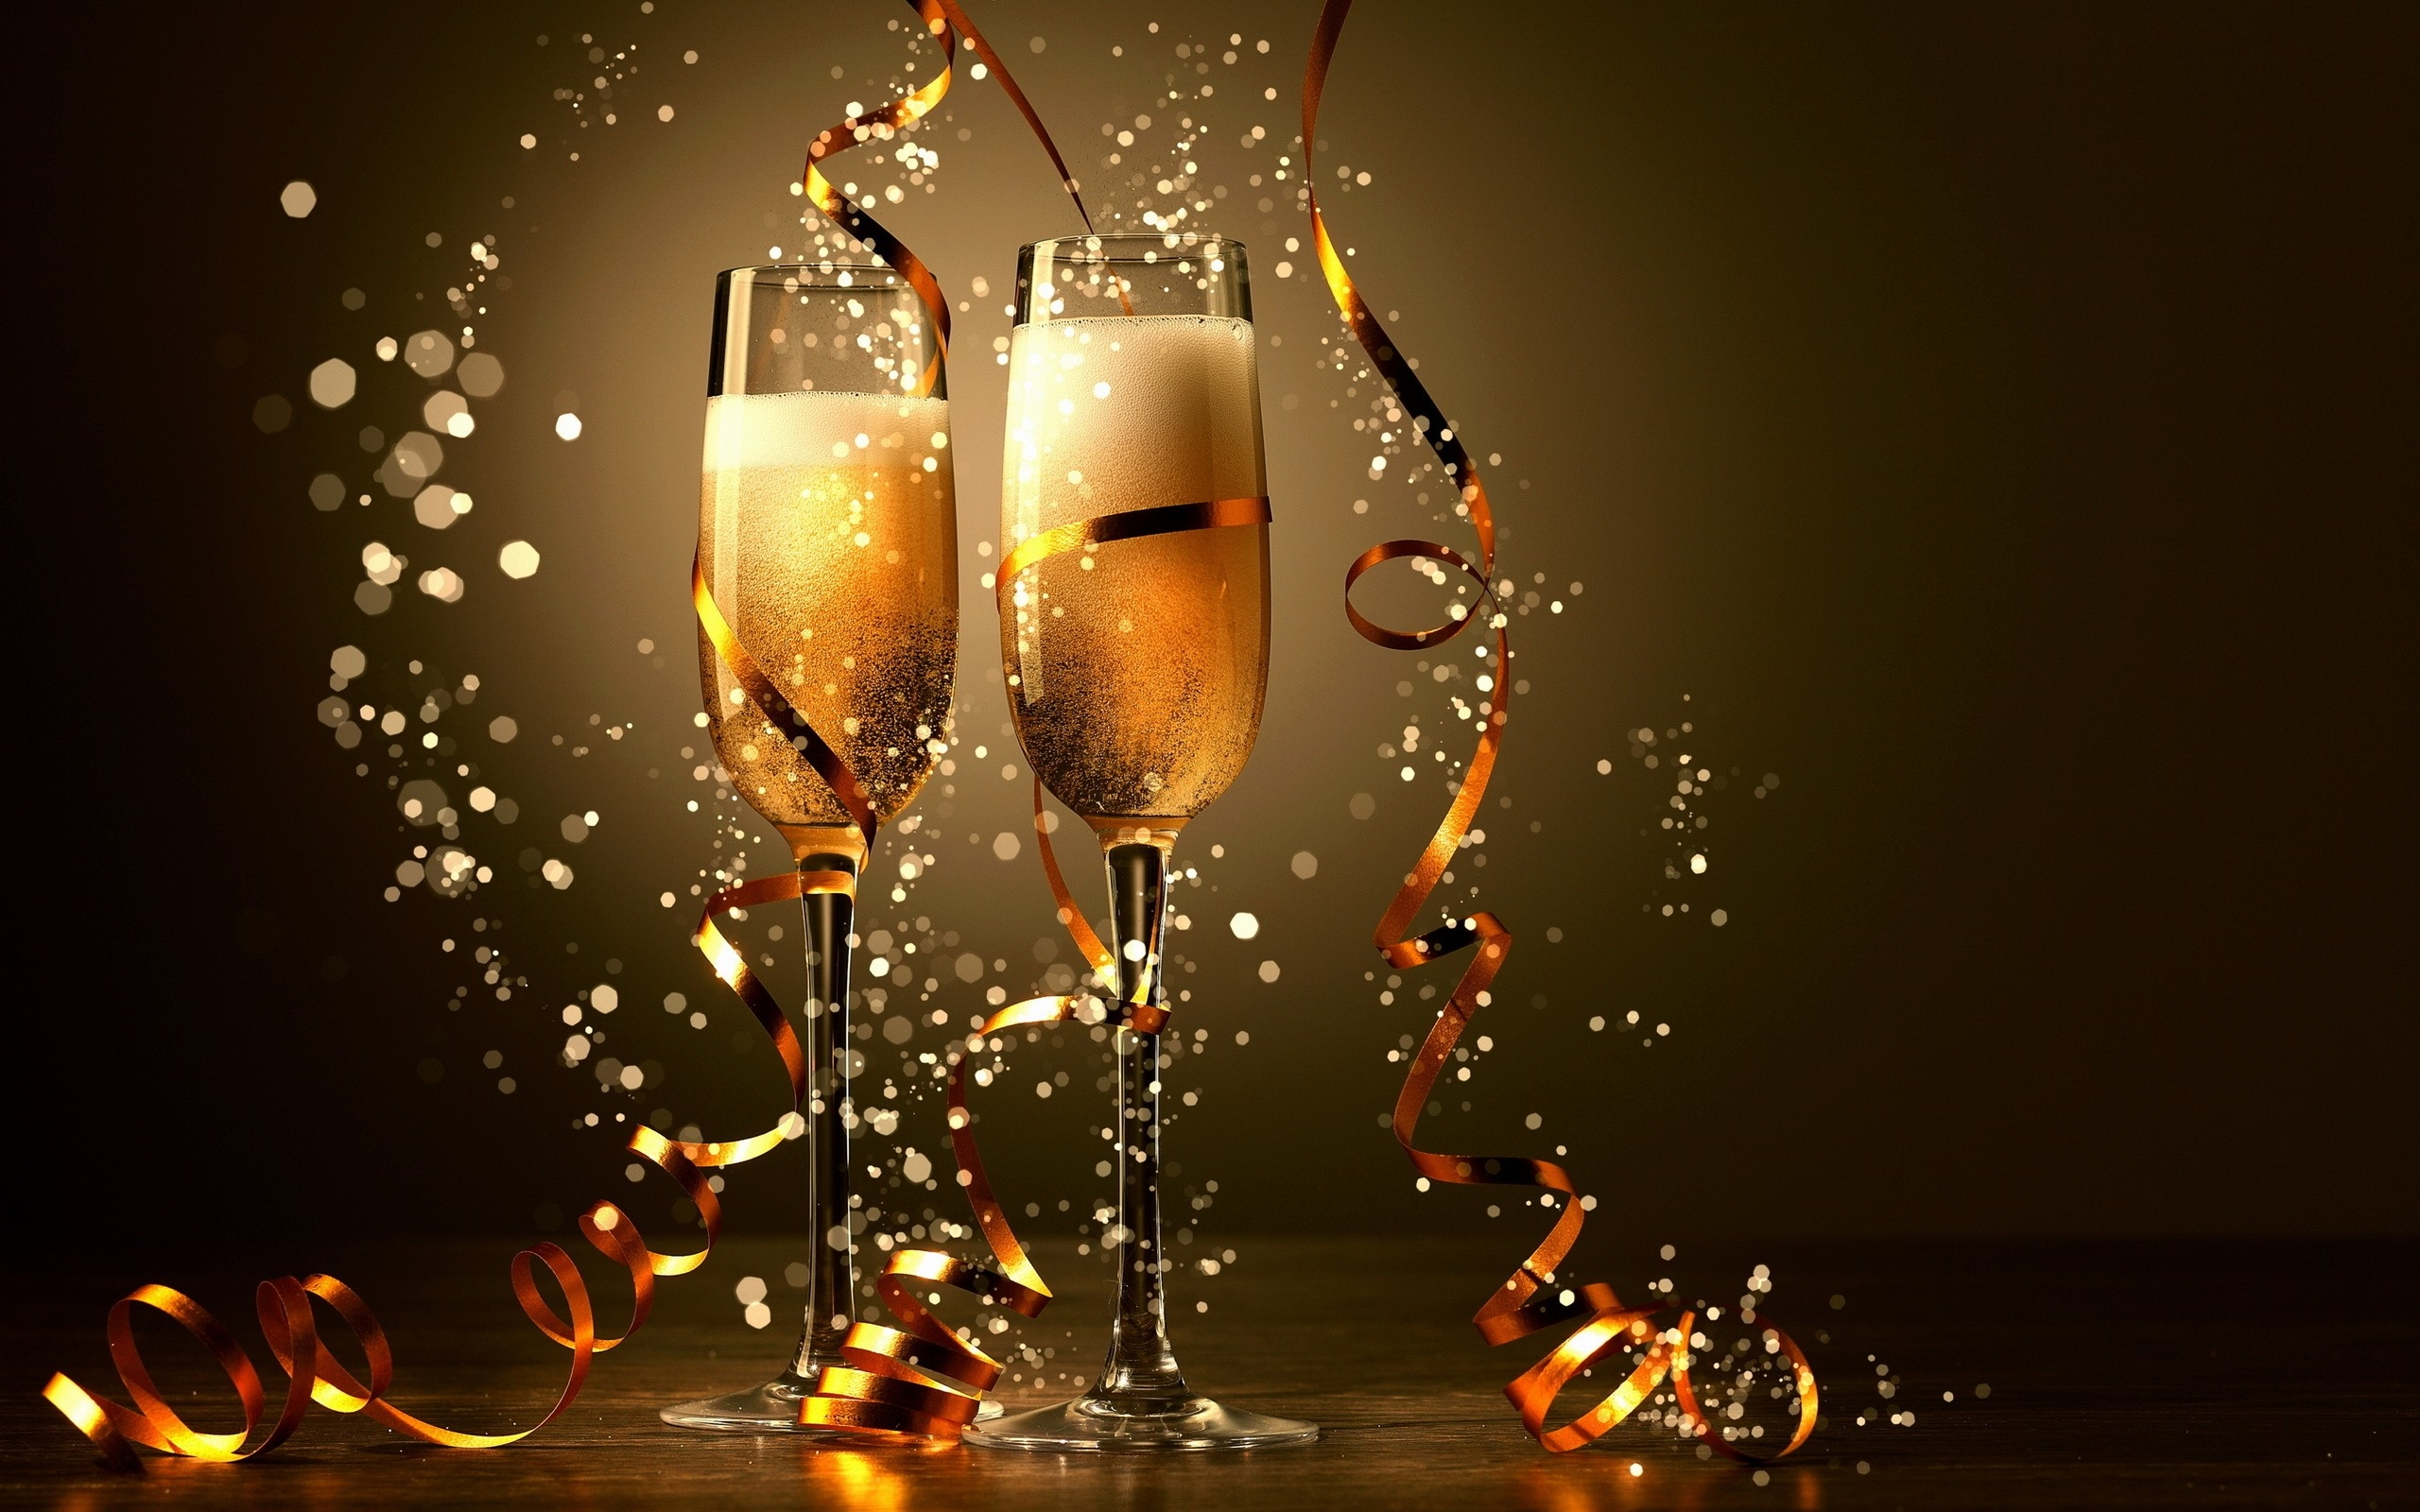 New Year s Eve at local restaurants   Food   Dining Magazine New Year s Eve at local restaurants